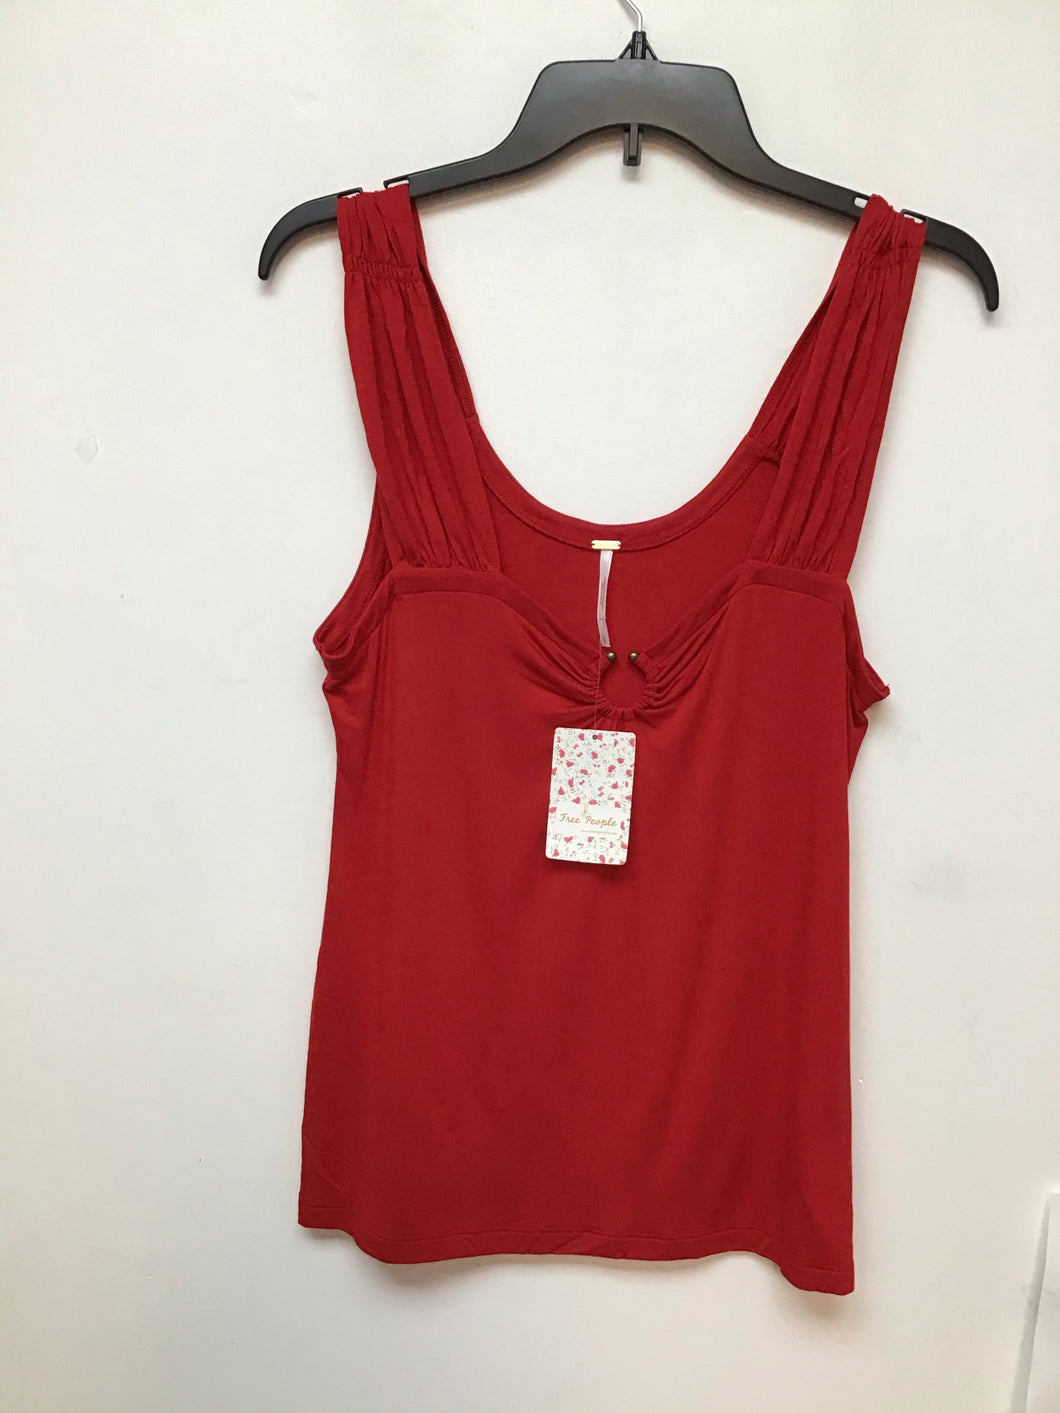 Free people red sleeveless top size large